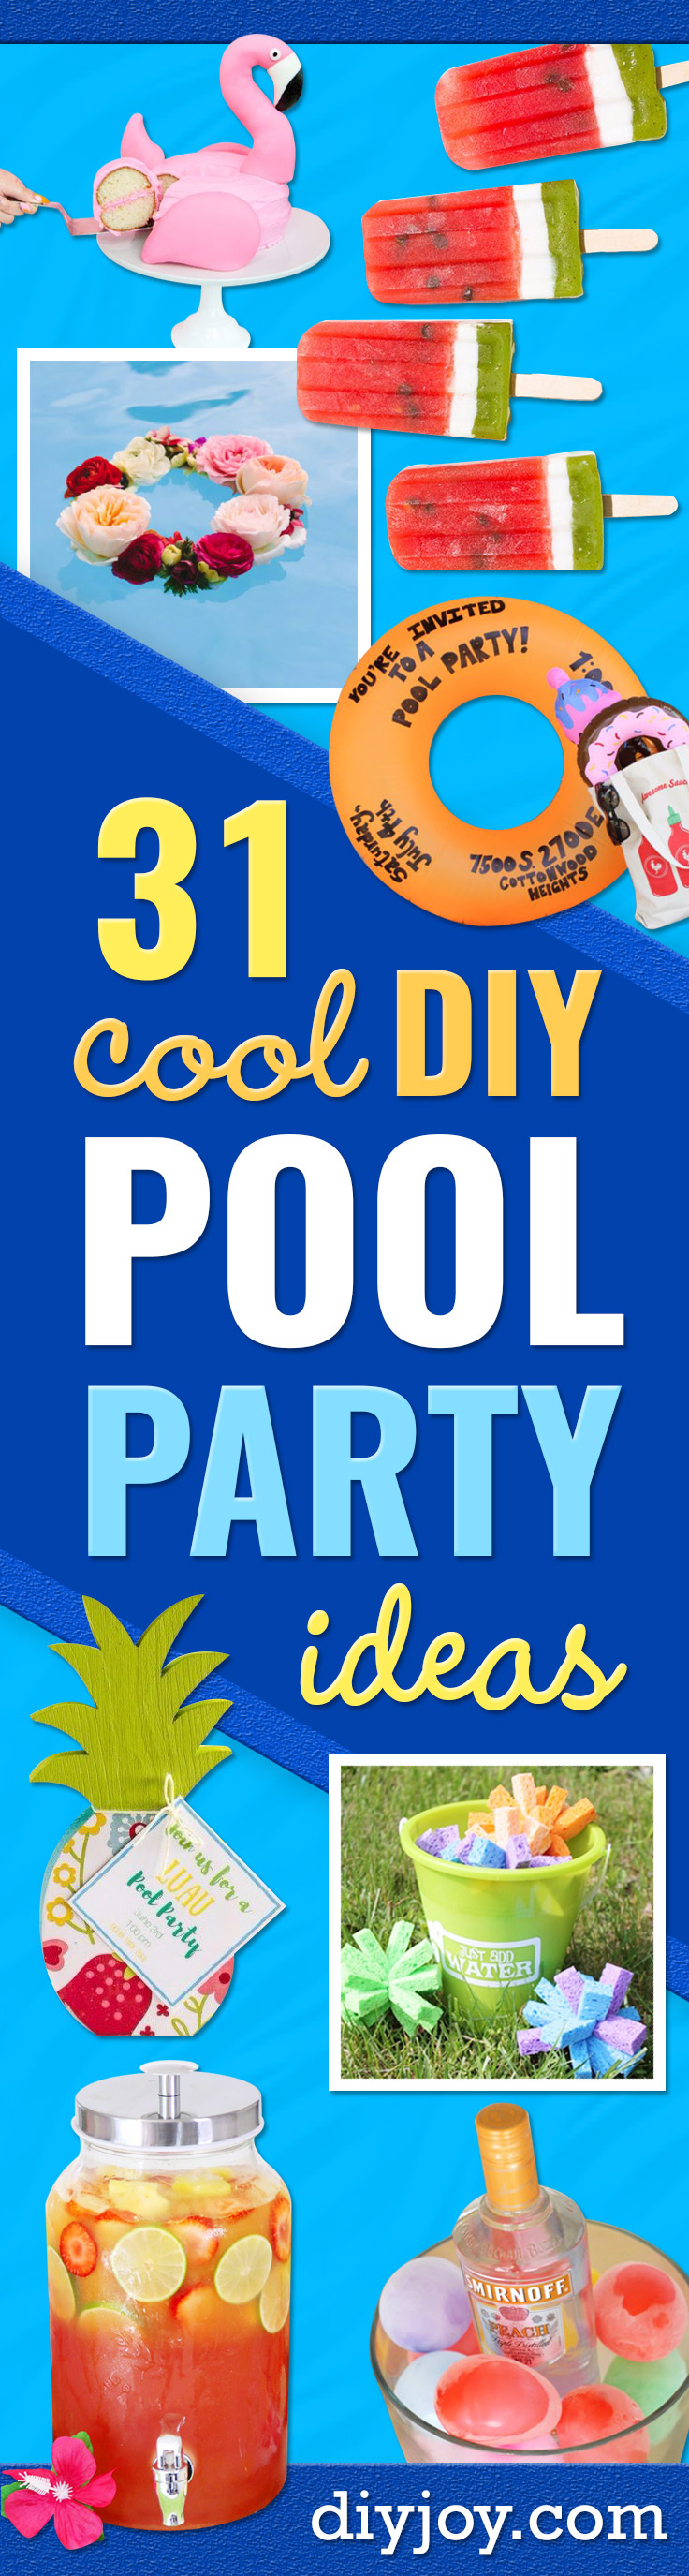 31 Diy Pool Party Ideas To Cool Off Your Summer